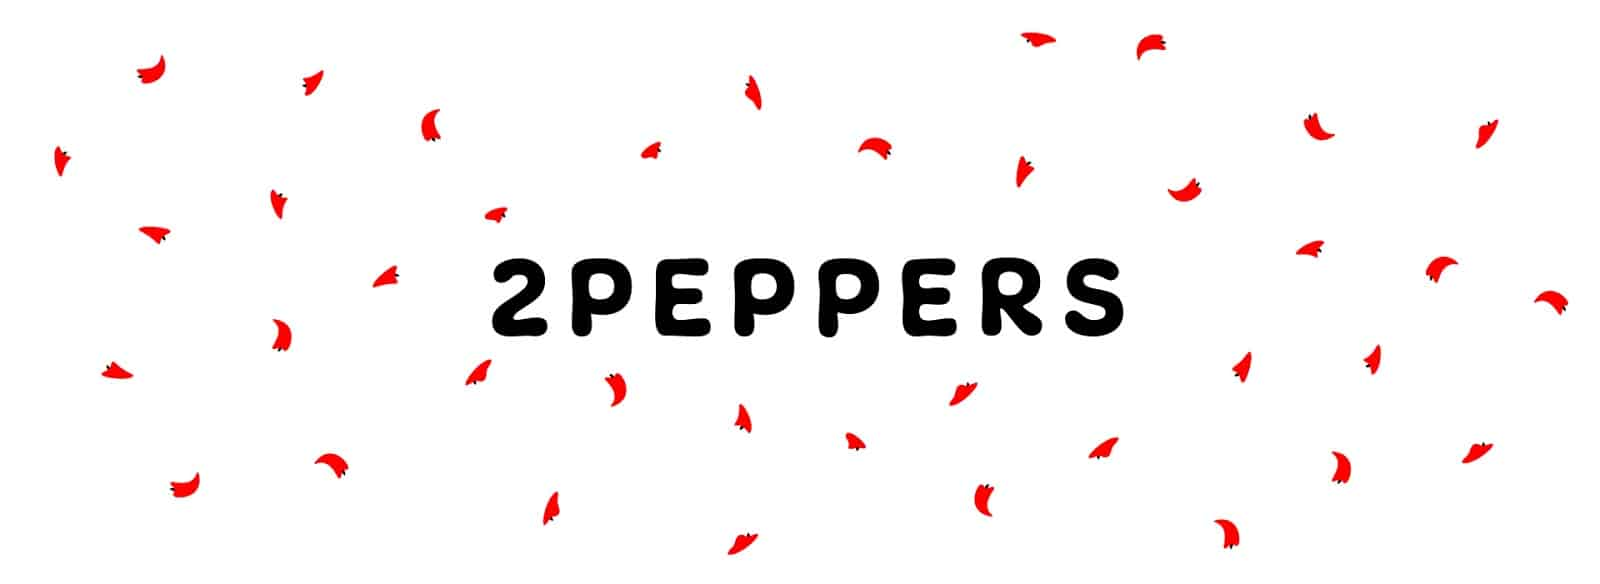 2peppers 07 - Ach, tie obaly - 2PEPPERS